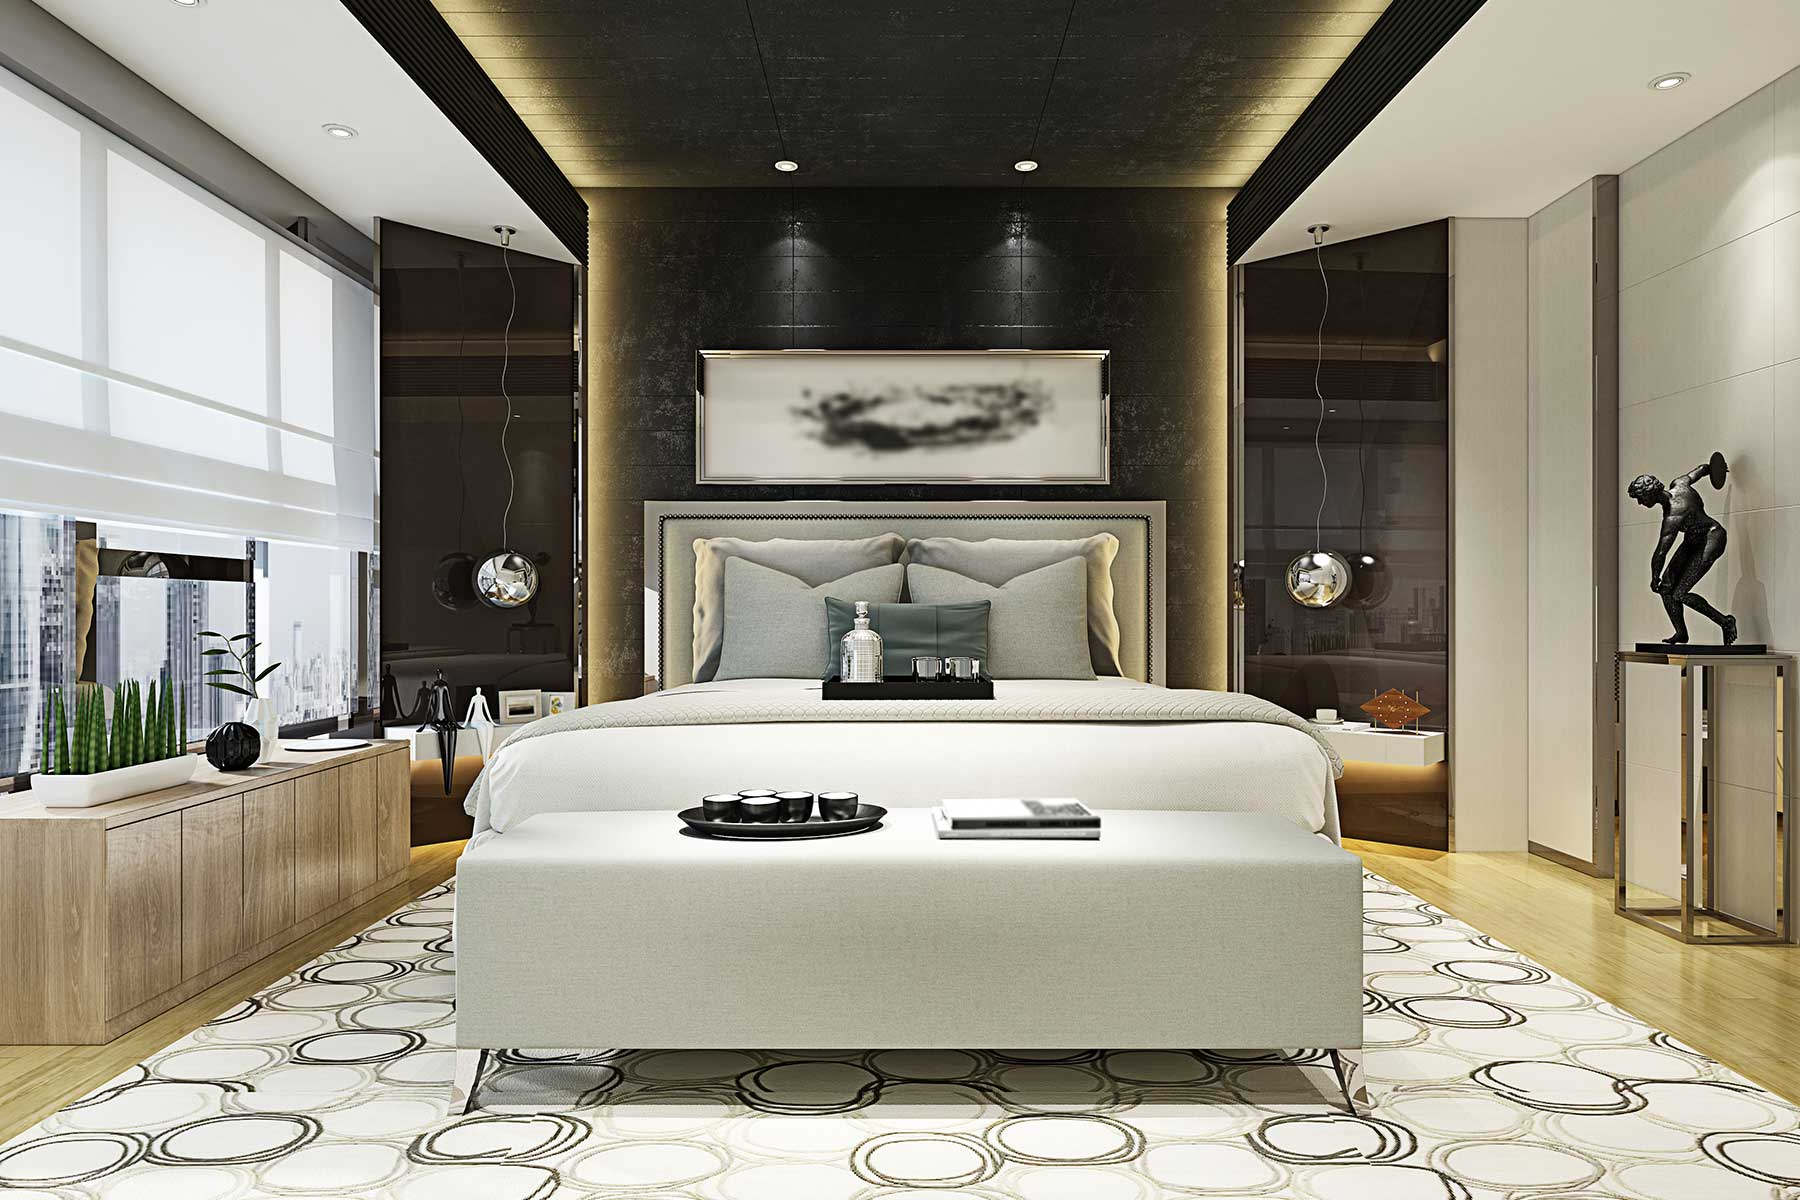 The master bedroom in a luxurious private residence